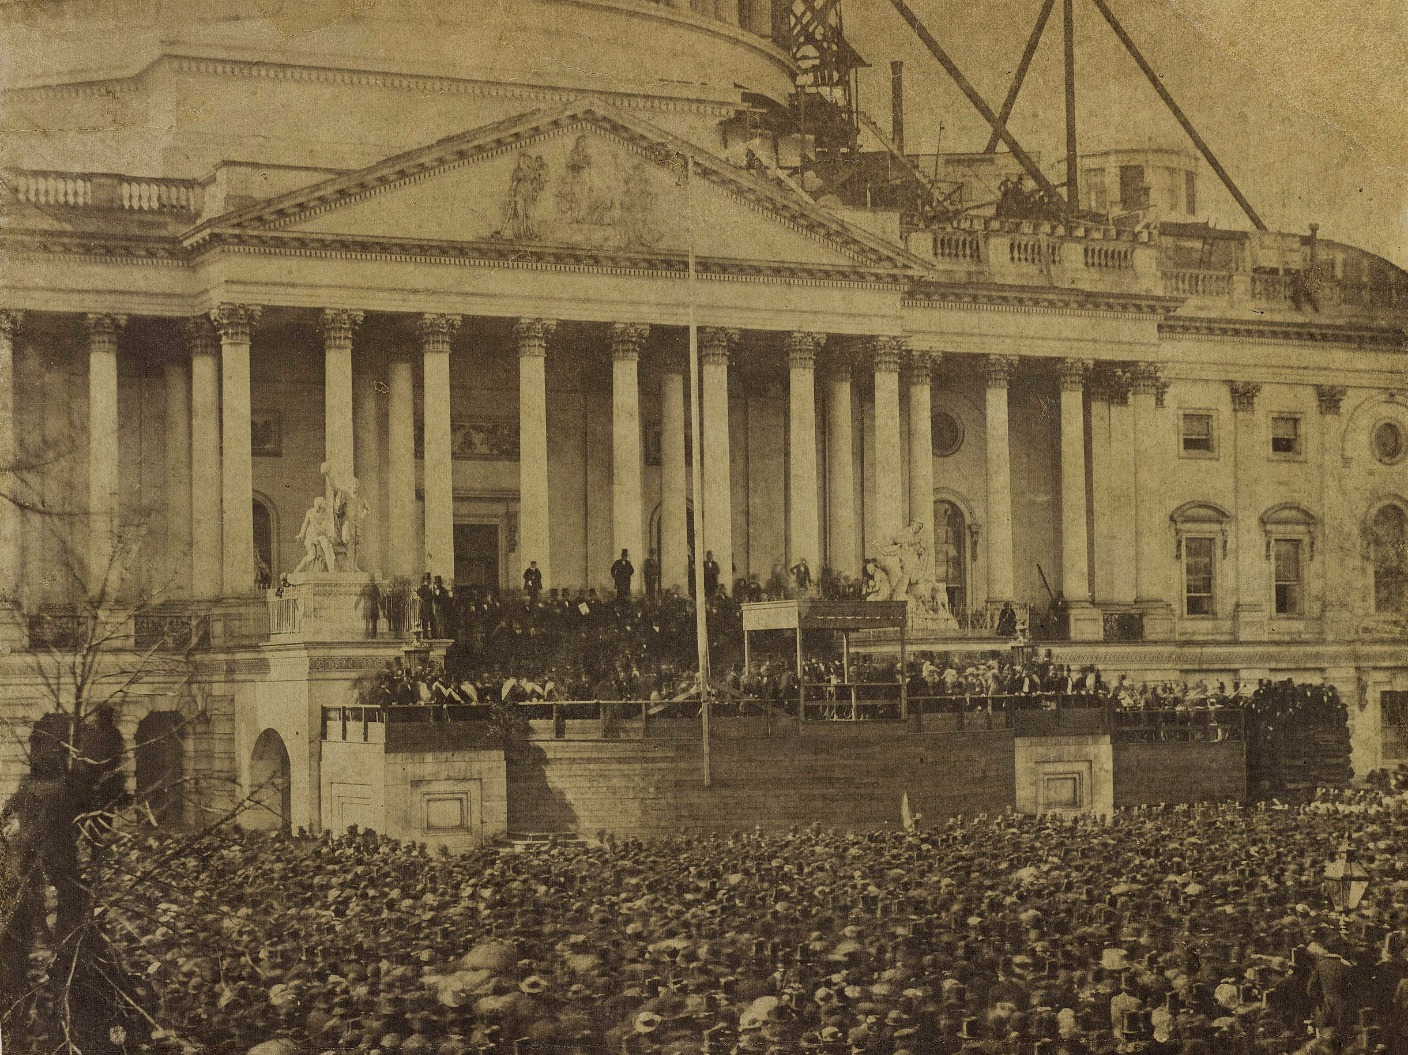 Rare abraham lincoln inauguration photo to be unveiled for First president to be inaugurated on january 20